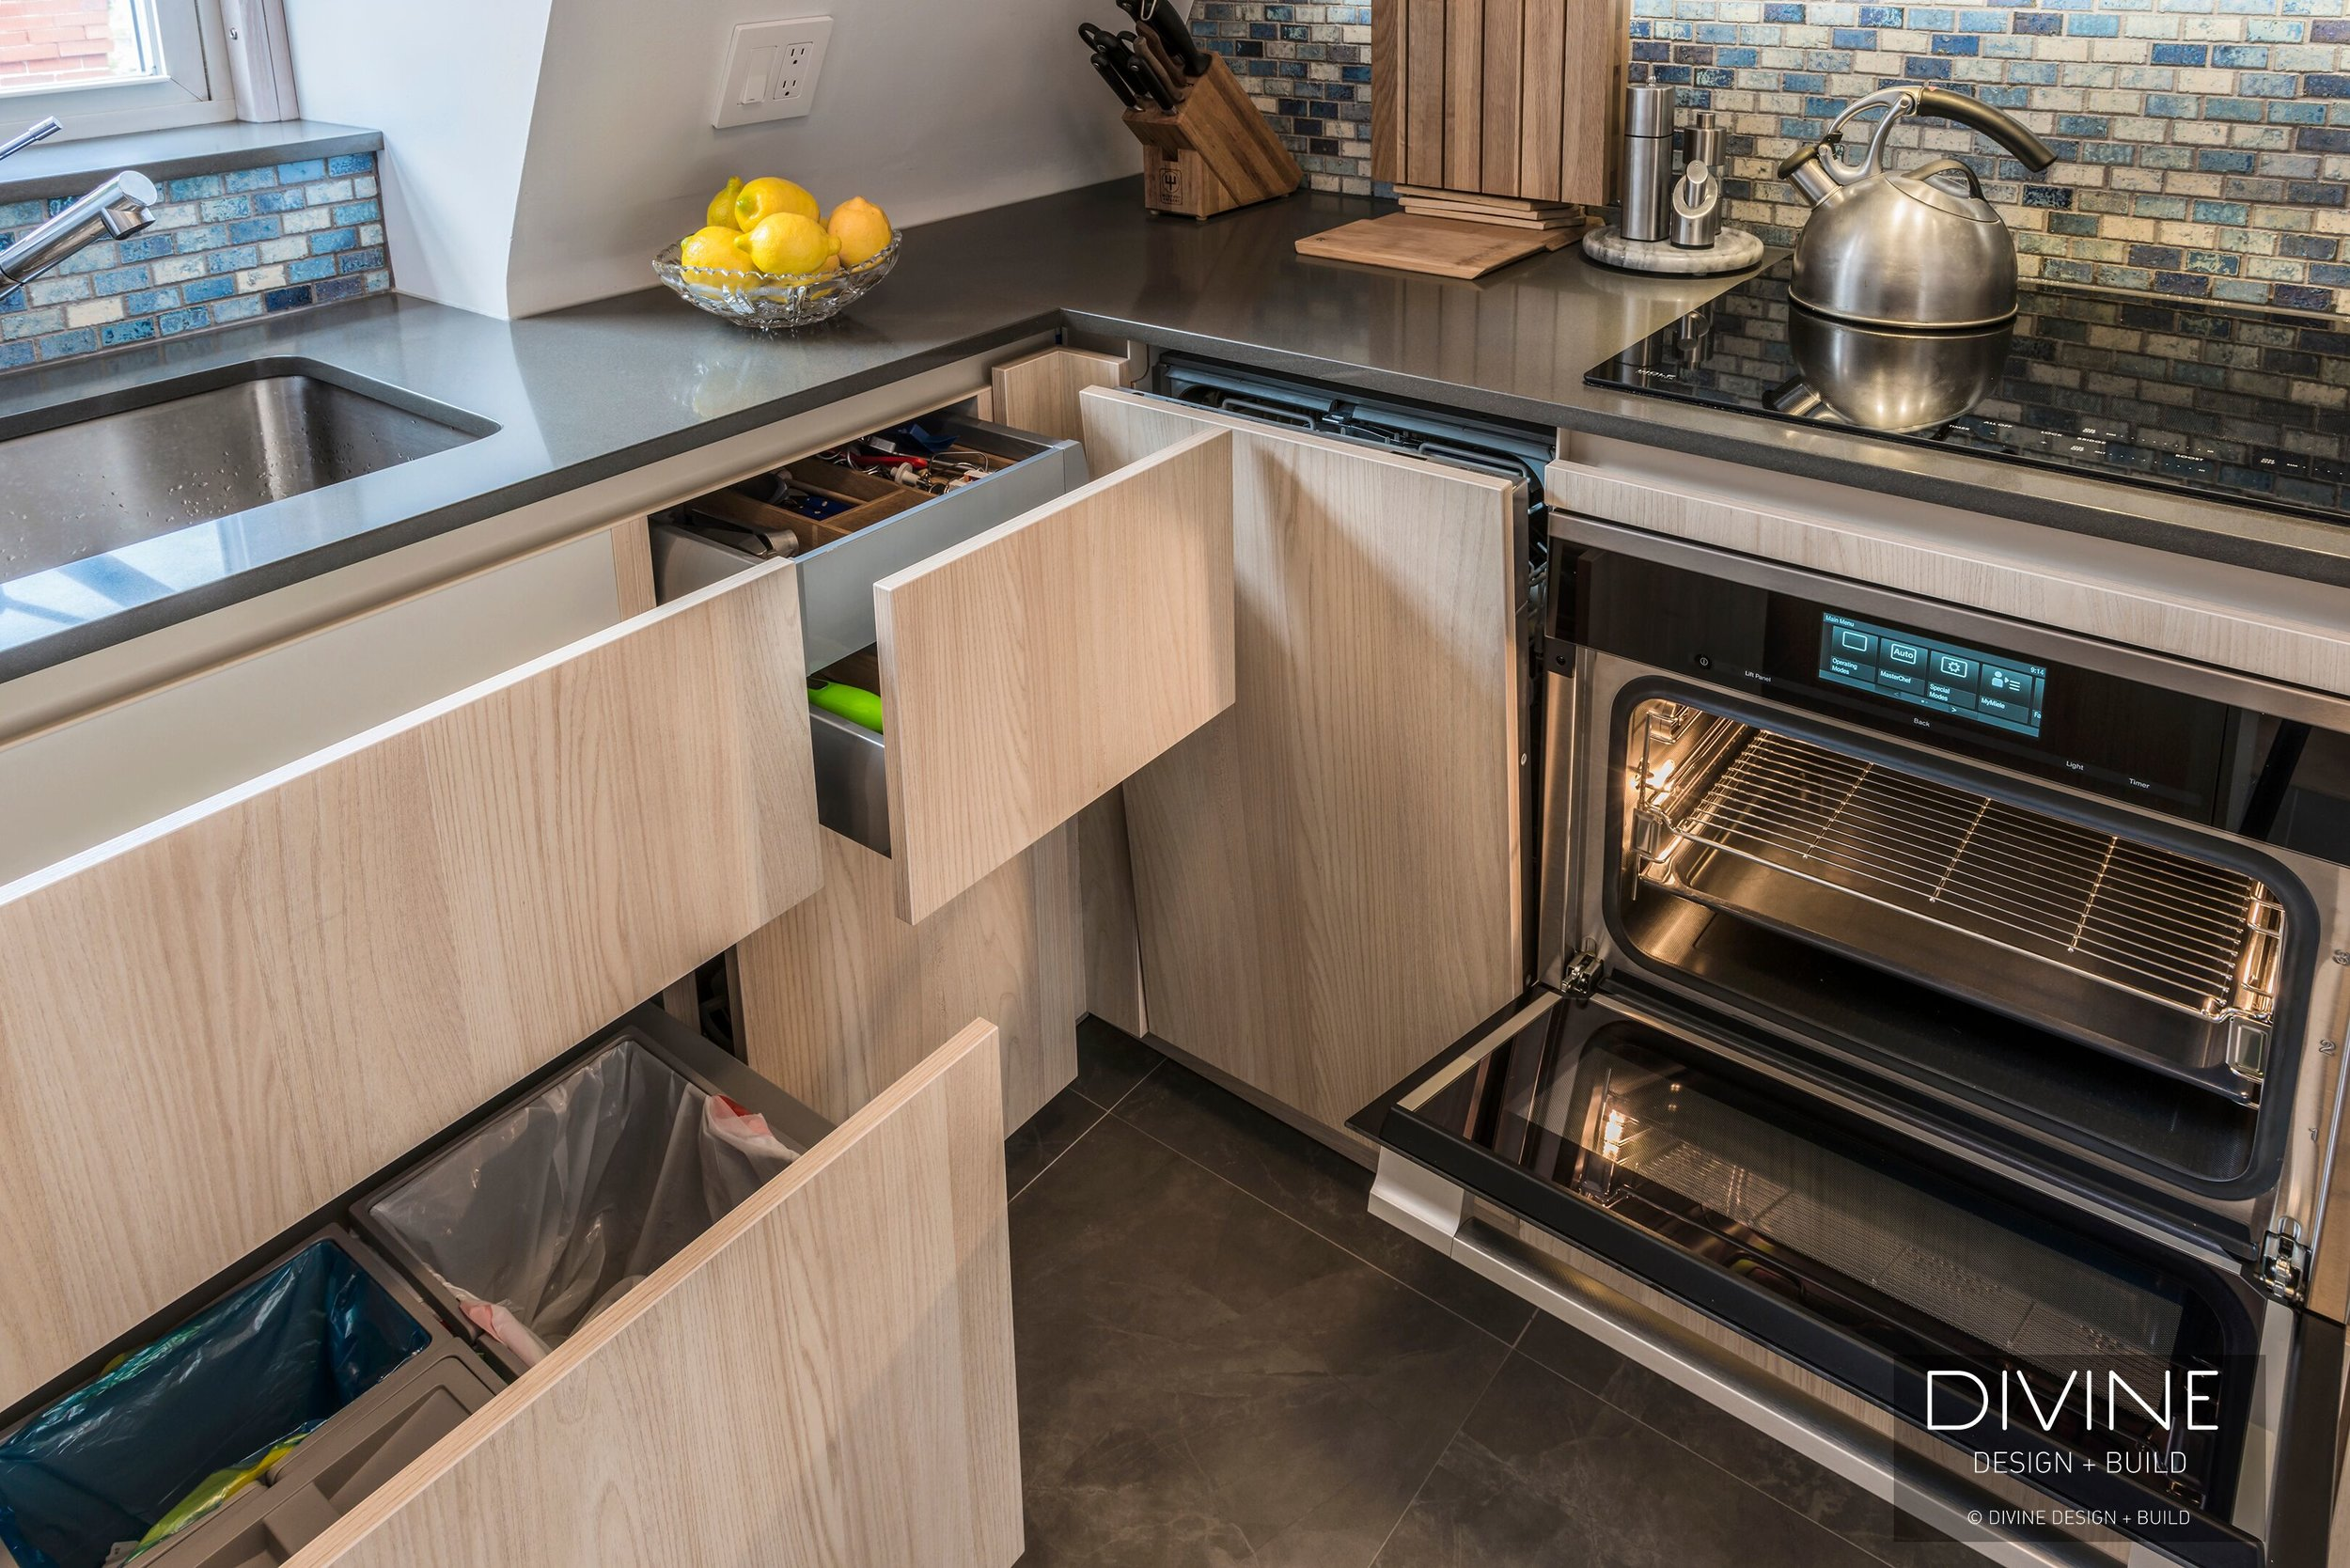 The Best Kitchen Cabinets for Small Spaces — Divine Design+Build